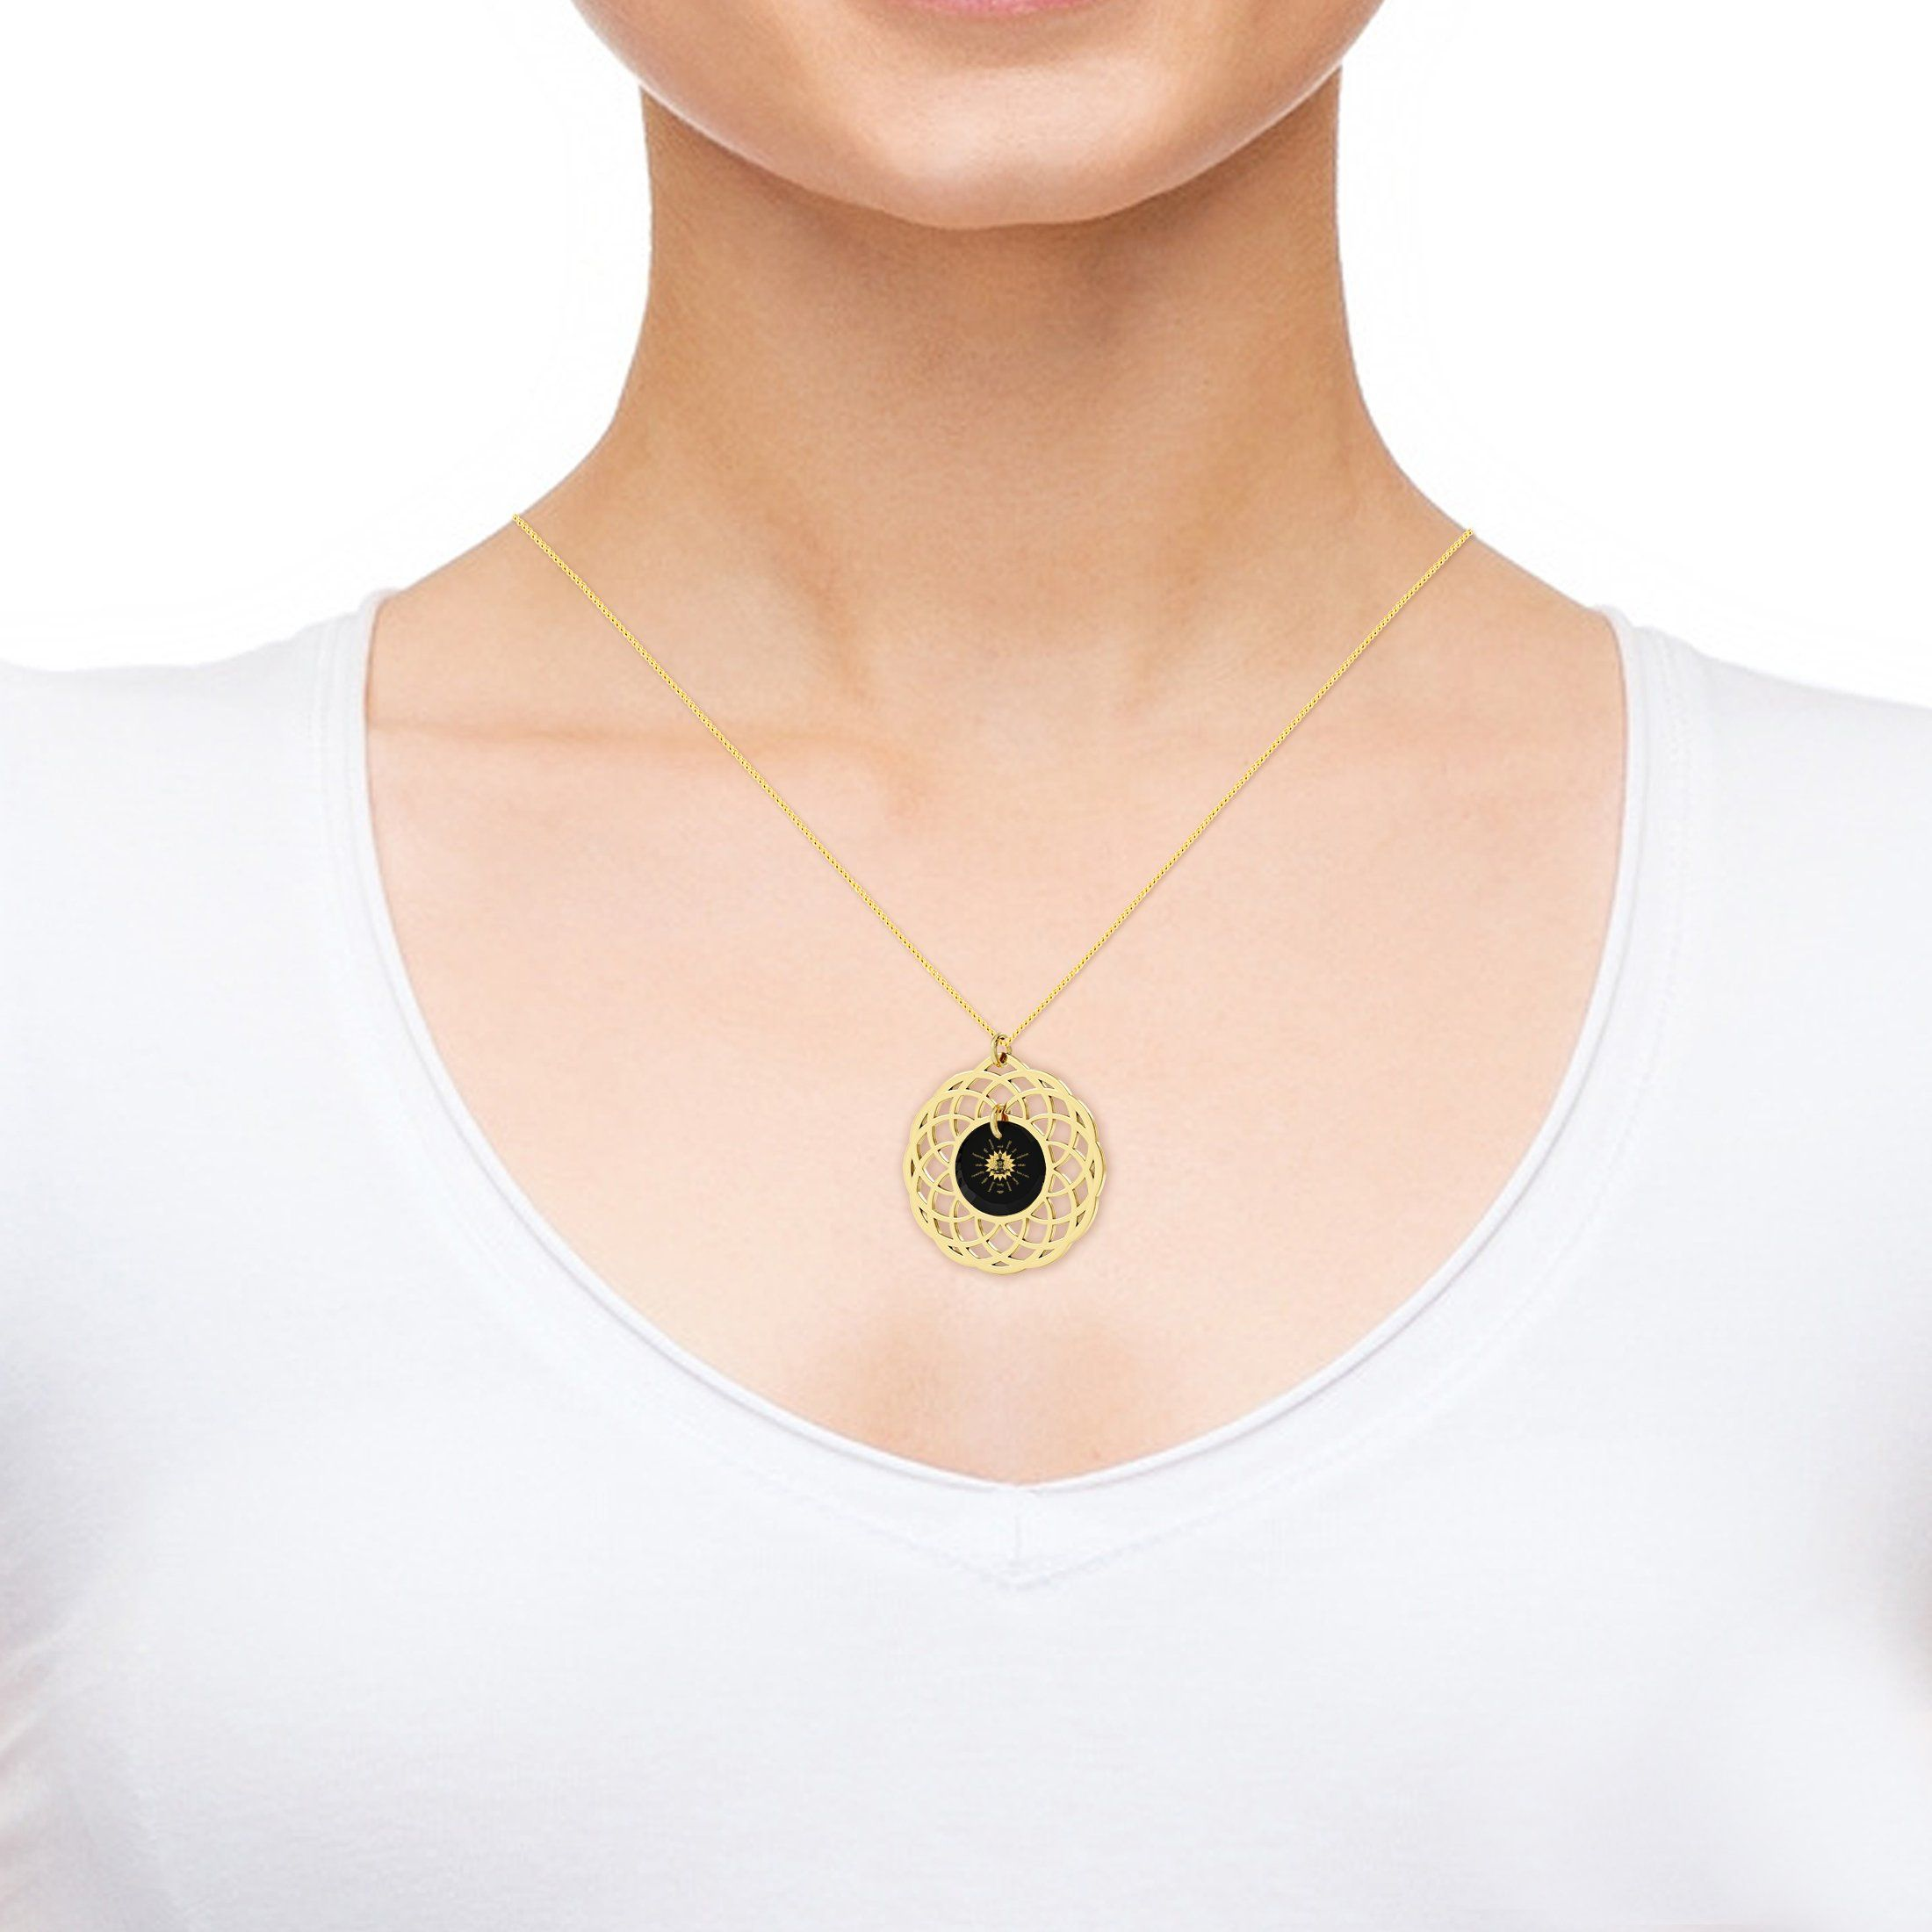 Meditation Jewelry for Her, Nano Jewelry